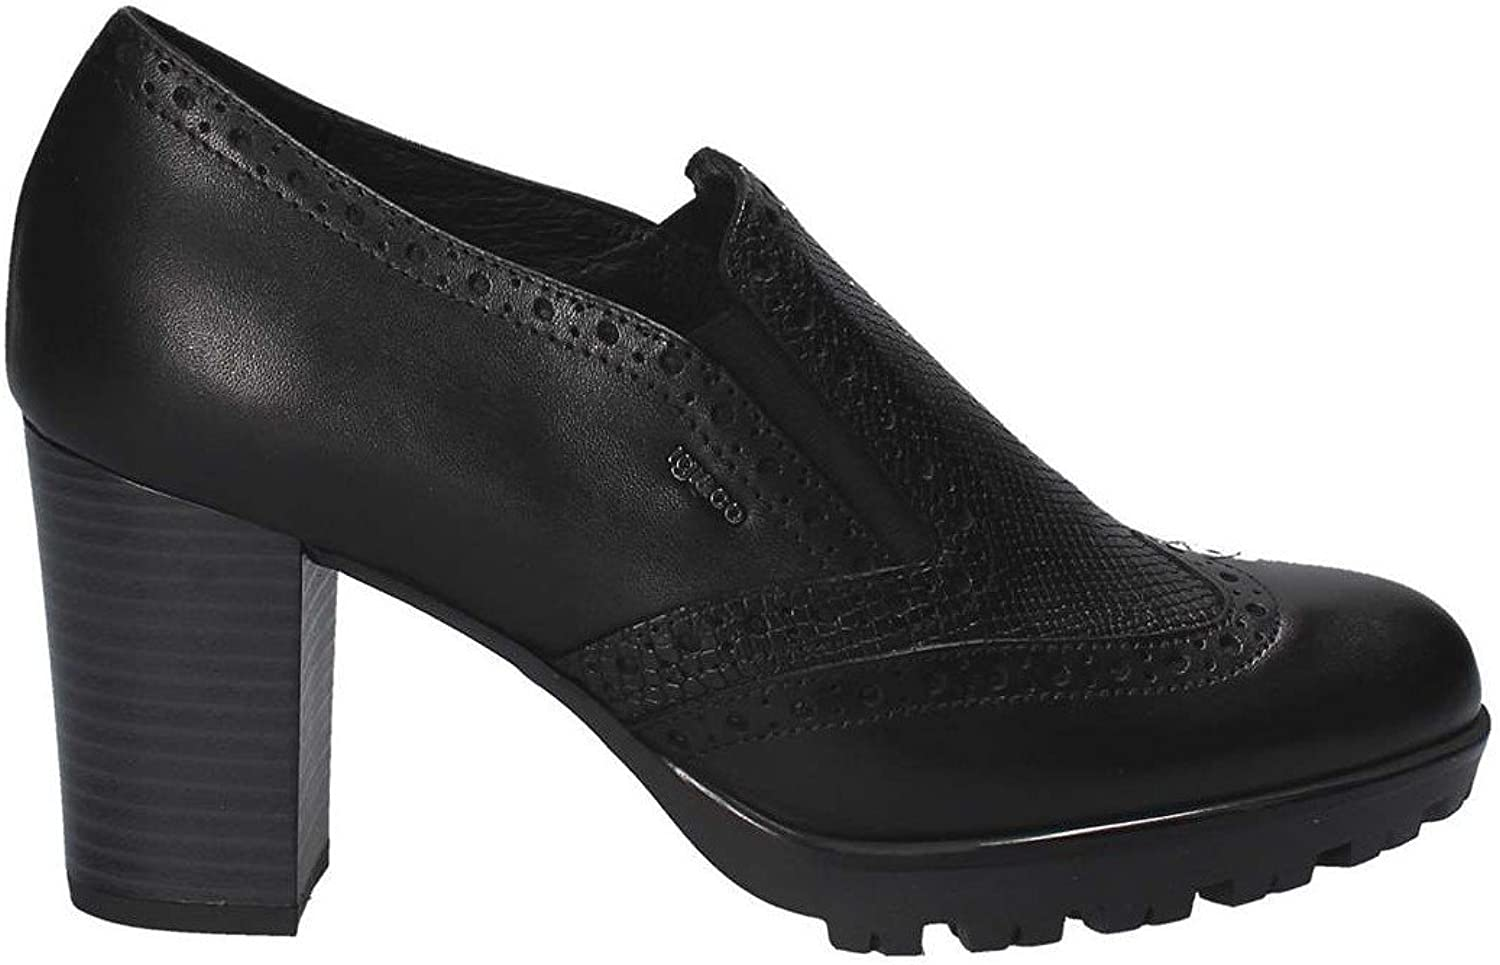 IGI & CO 88640 Ladies' shoes Women's Leather Made in